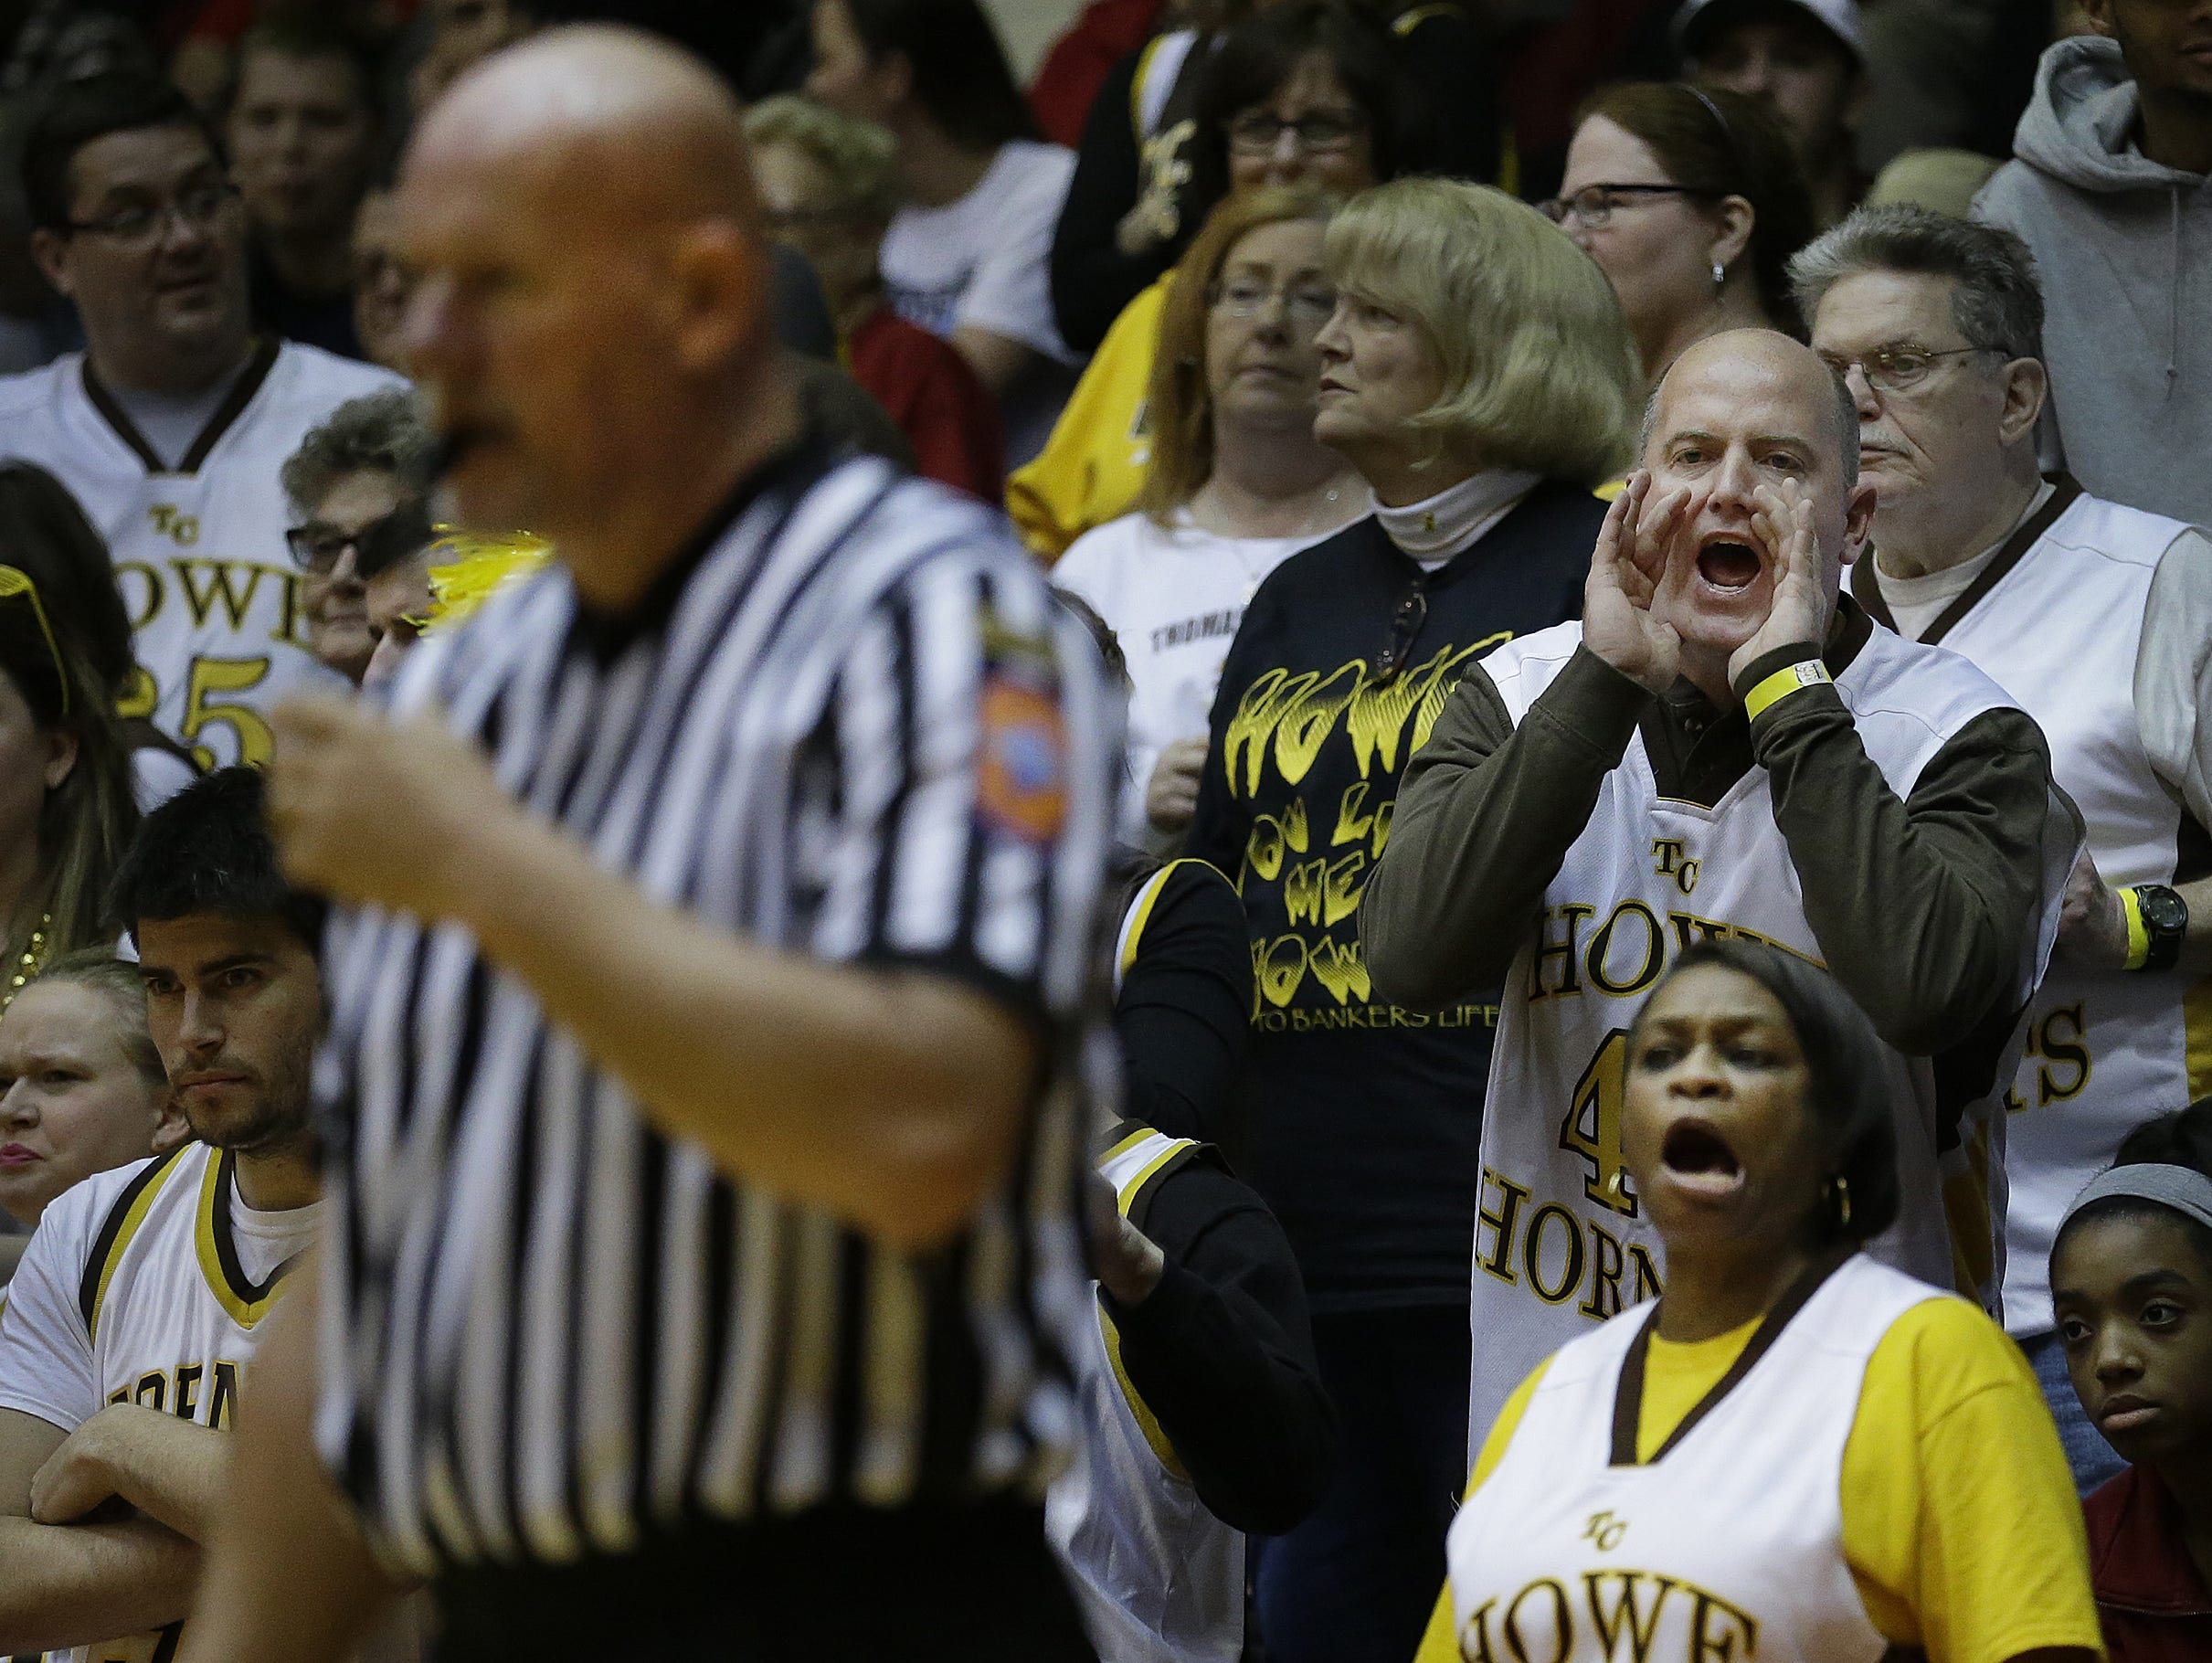 Fans from Howe give their opinions to the IHSAA officials in the second half of their Class 2A semistate game, March 19, 2016.